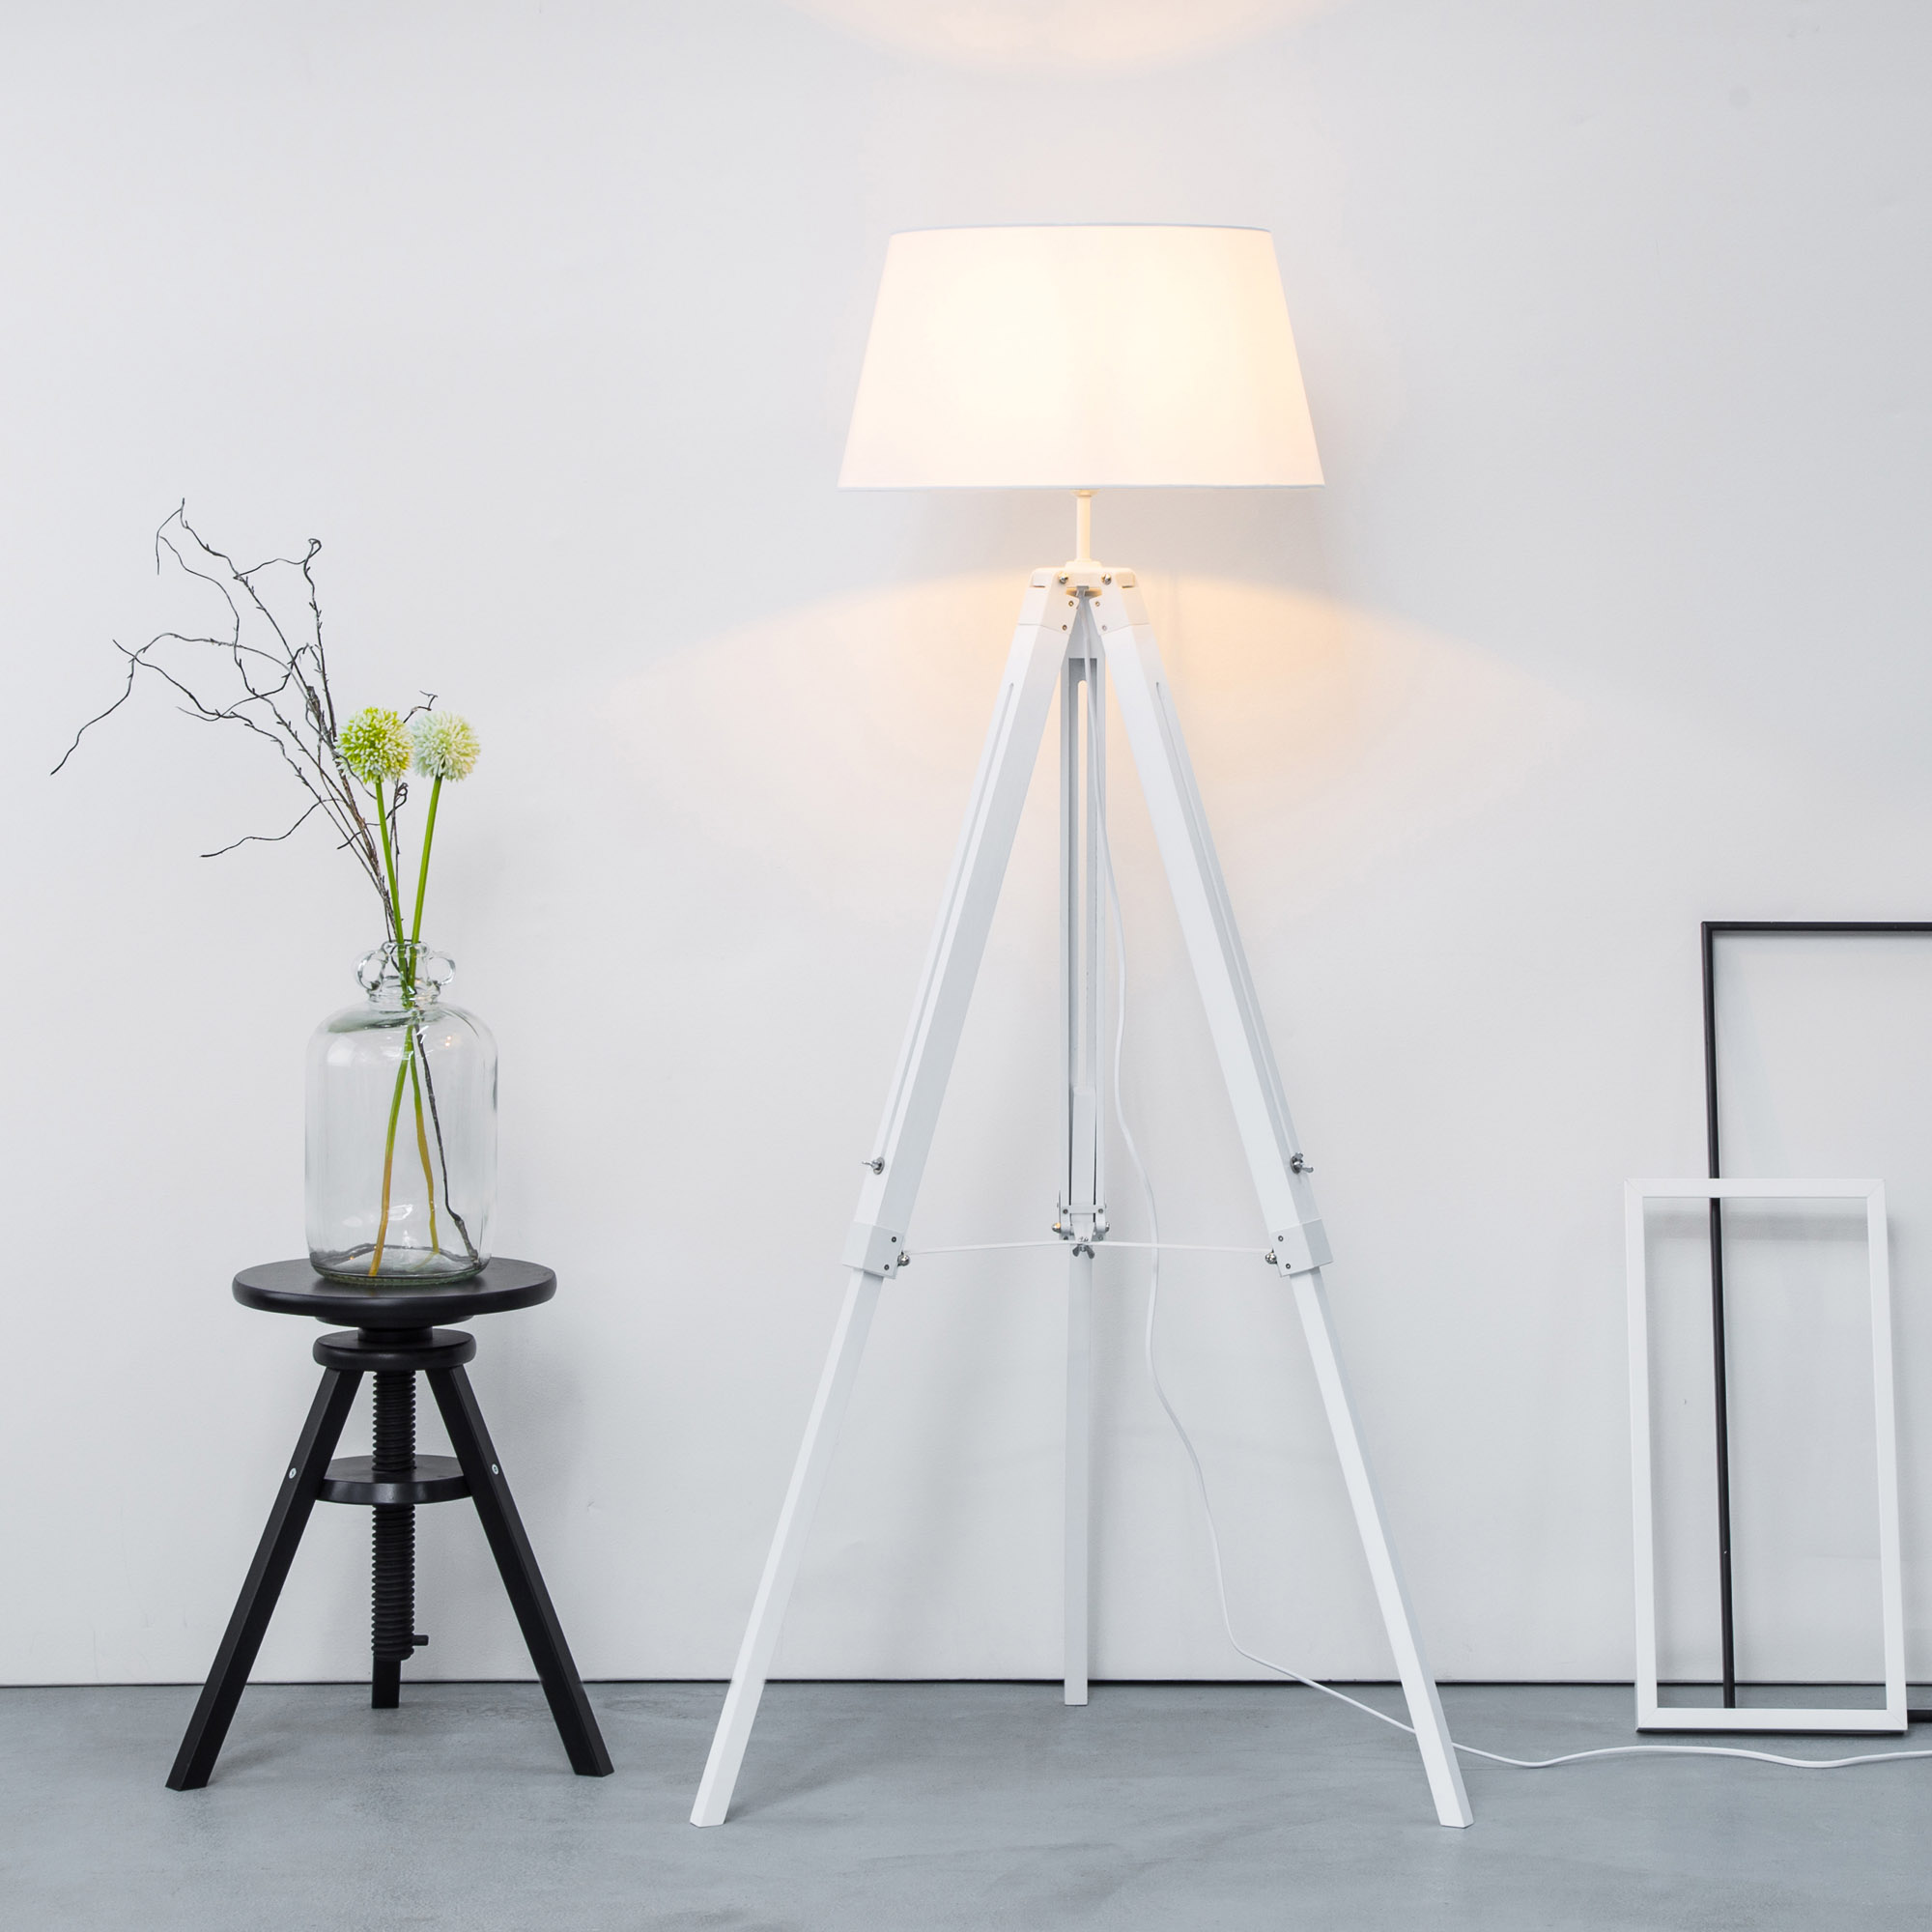 stativ stehleuchte mit textilschirm tripod dreibein aus holz h 145 cm 45 cm 1x e27 max. Black Bedroom Furniture Sets. Home Design Ideas